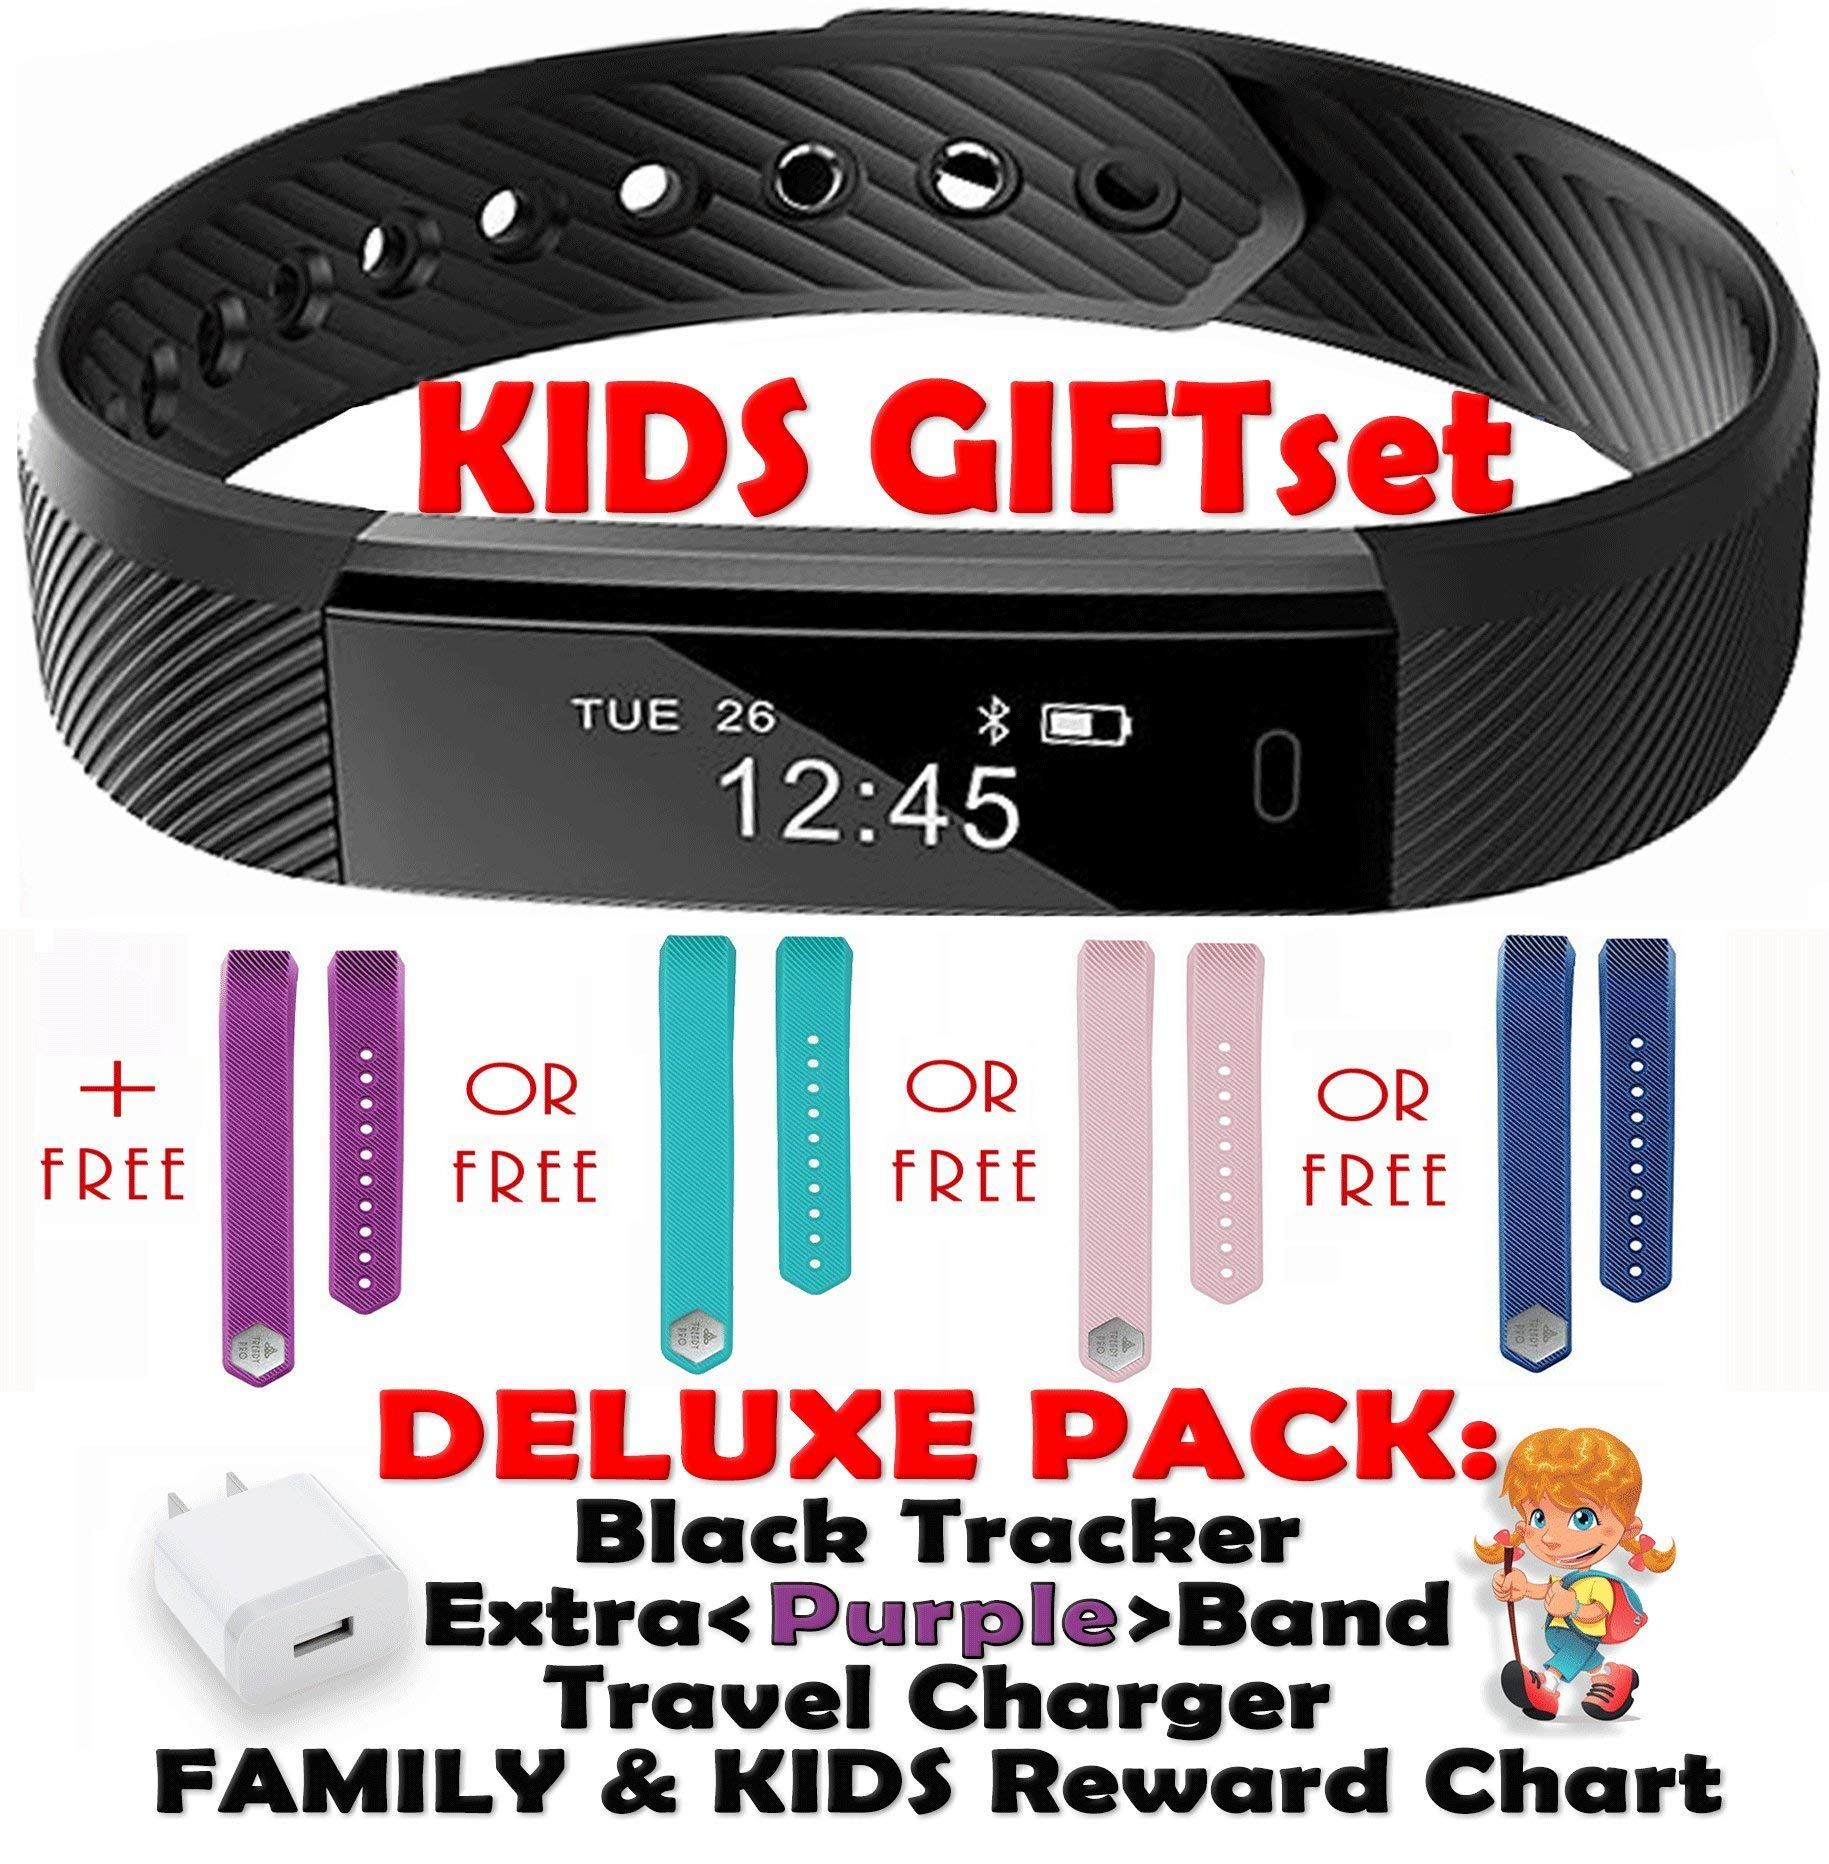 Kids Fitness Tracker for Kids Activity Tracker - Smart Watch for Android Phones iOS Digital Smart Bluetooth Step Counter Sleep Monitor Exercise Pedometer Alarm Remin - Purple Gift Set Black 2 Bands by TRENDY PRO